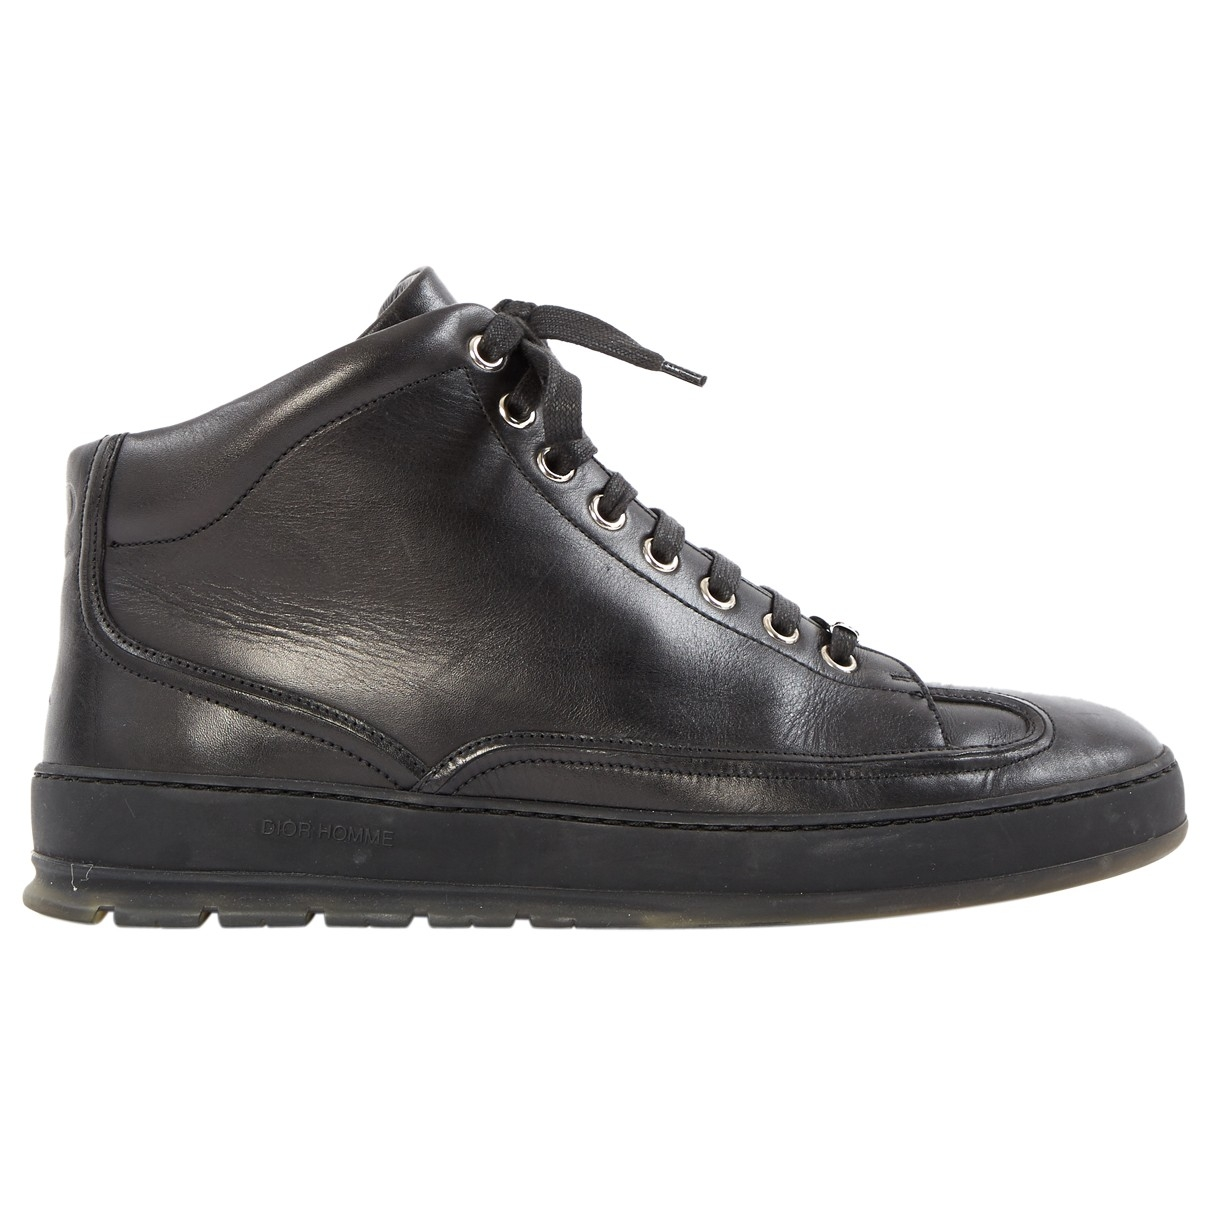 Dior \N Black Leather Trainers for Men 39.5 EU